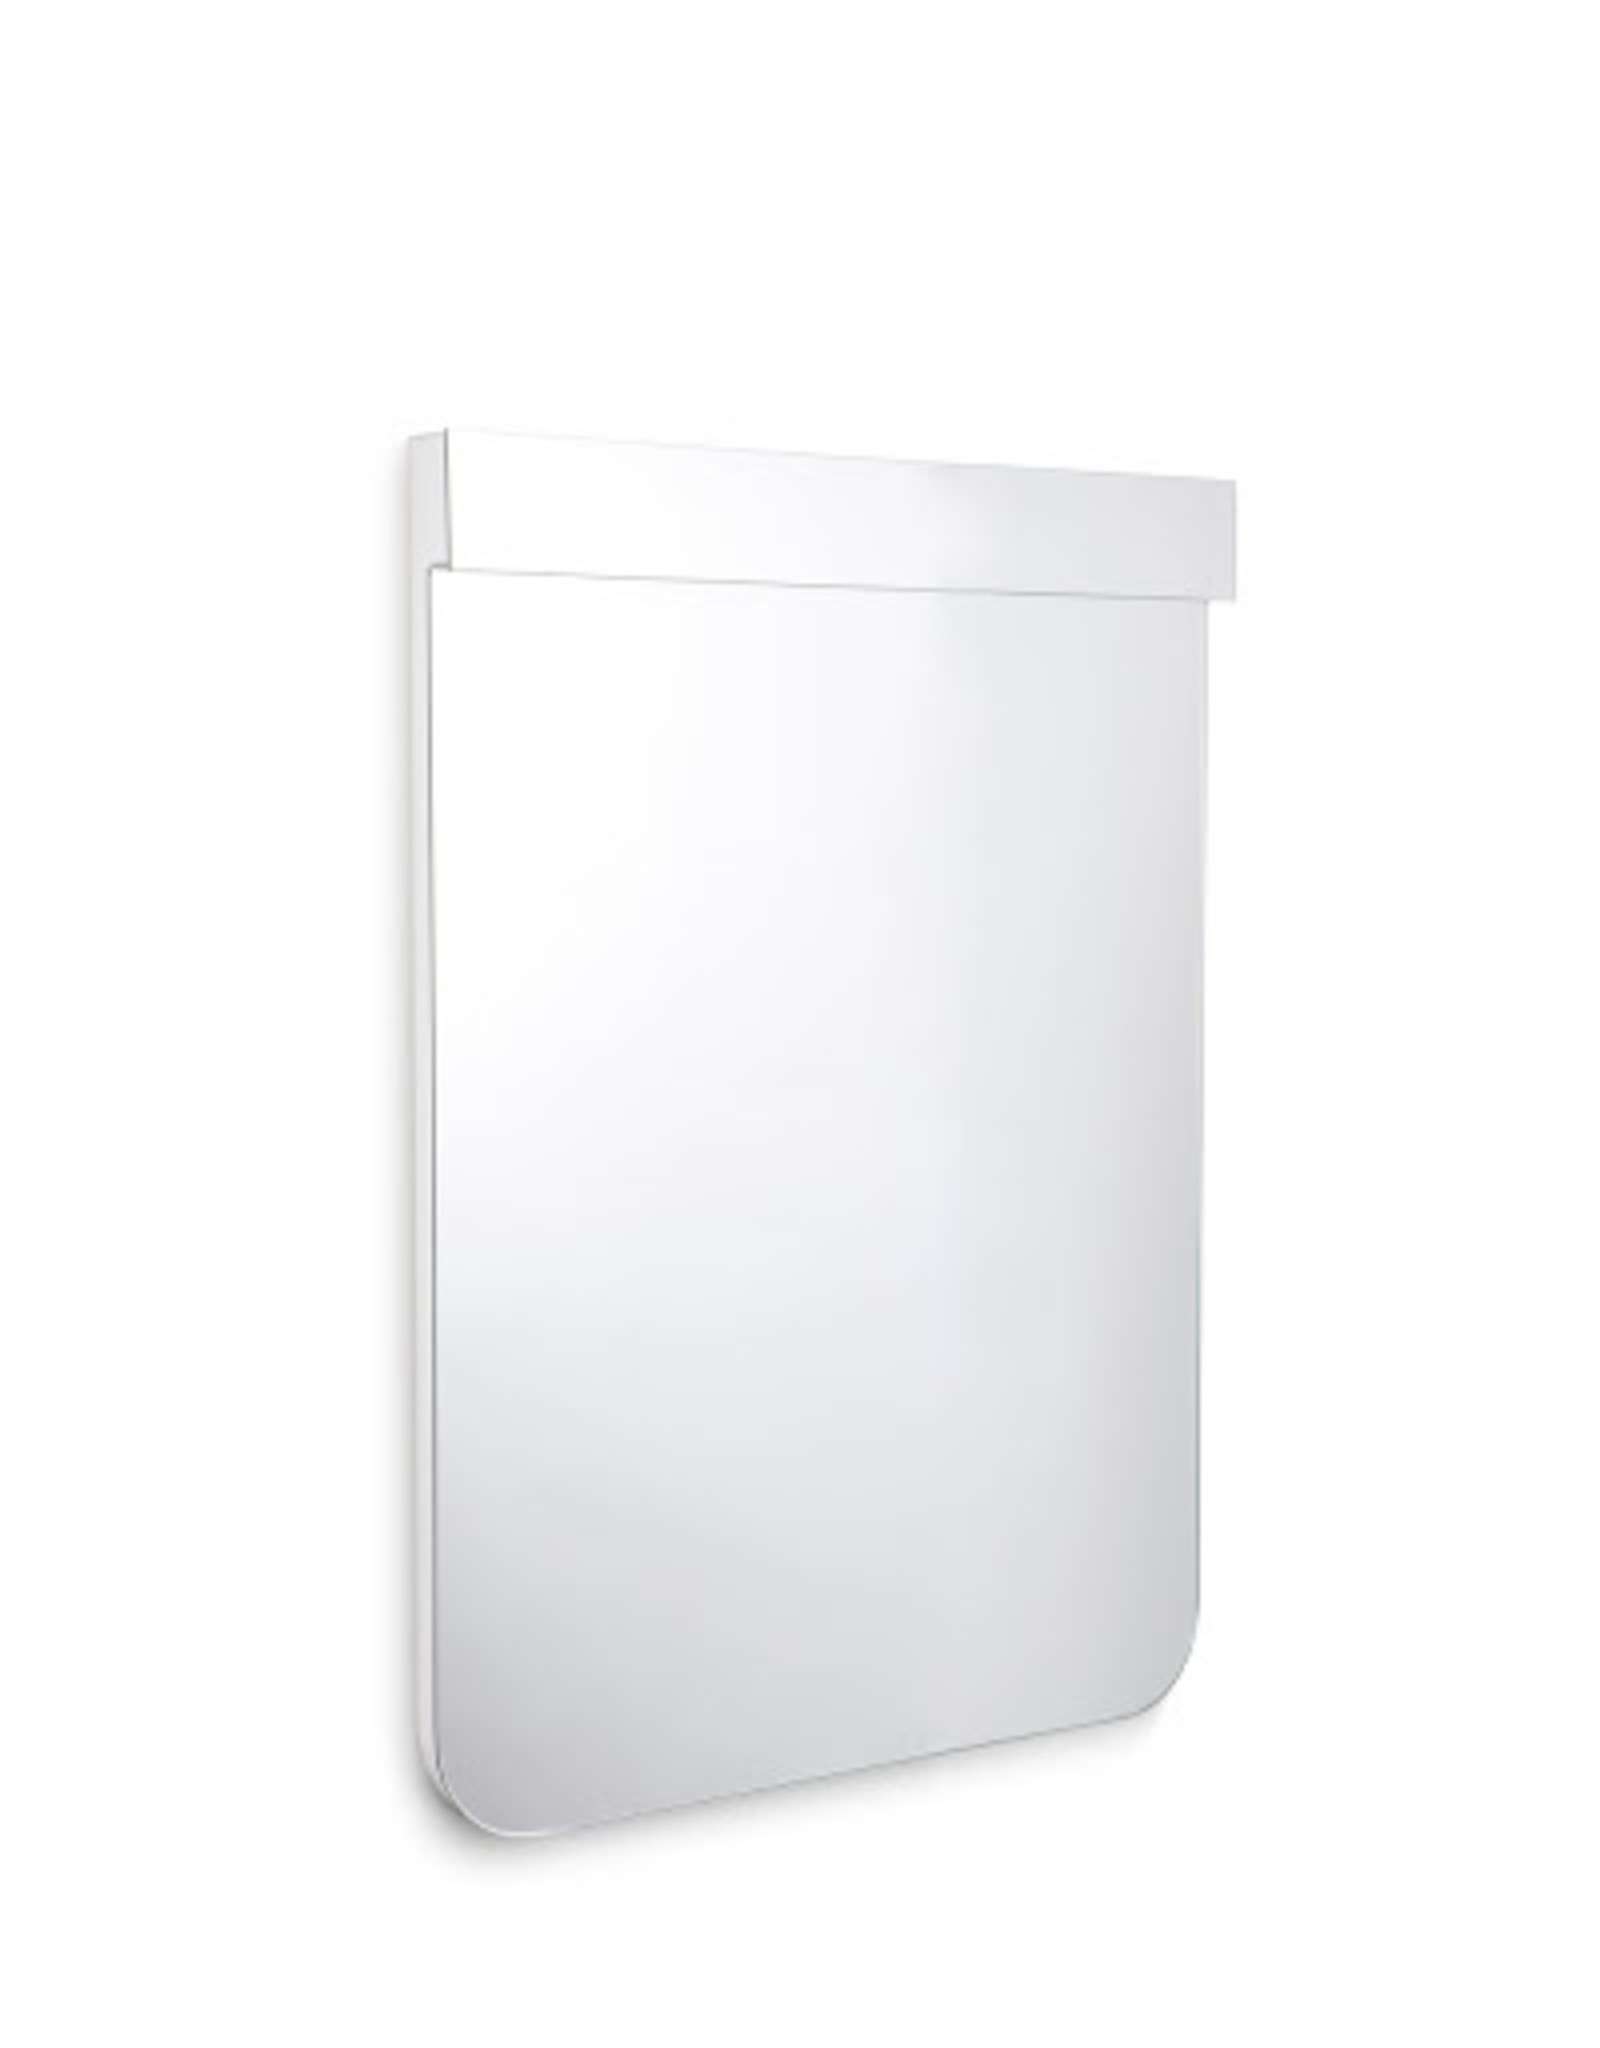 Scalin mirror with white frame 90cm - outlet